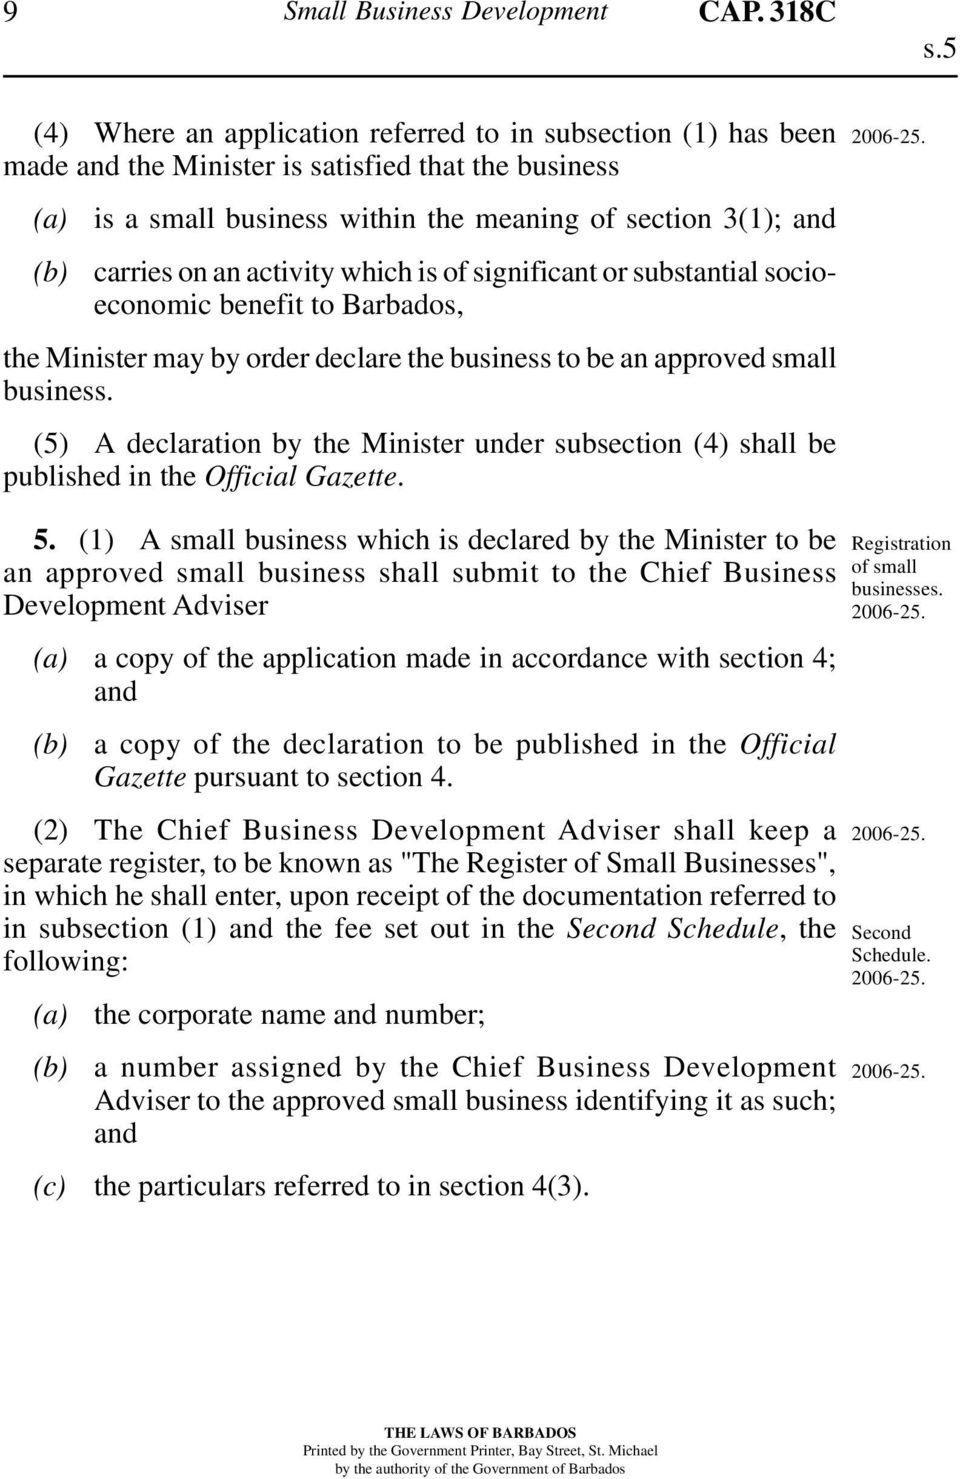 activity which is of significant or substantial socioeconomic benefit to Barbados, the Minister may by order declare the business to be an approved small business.